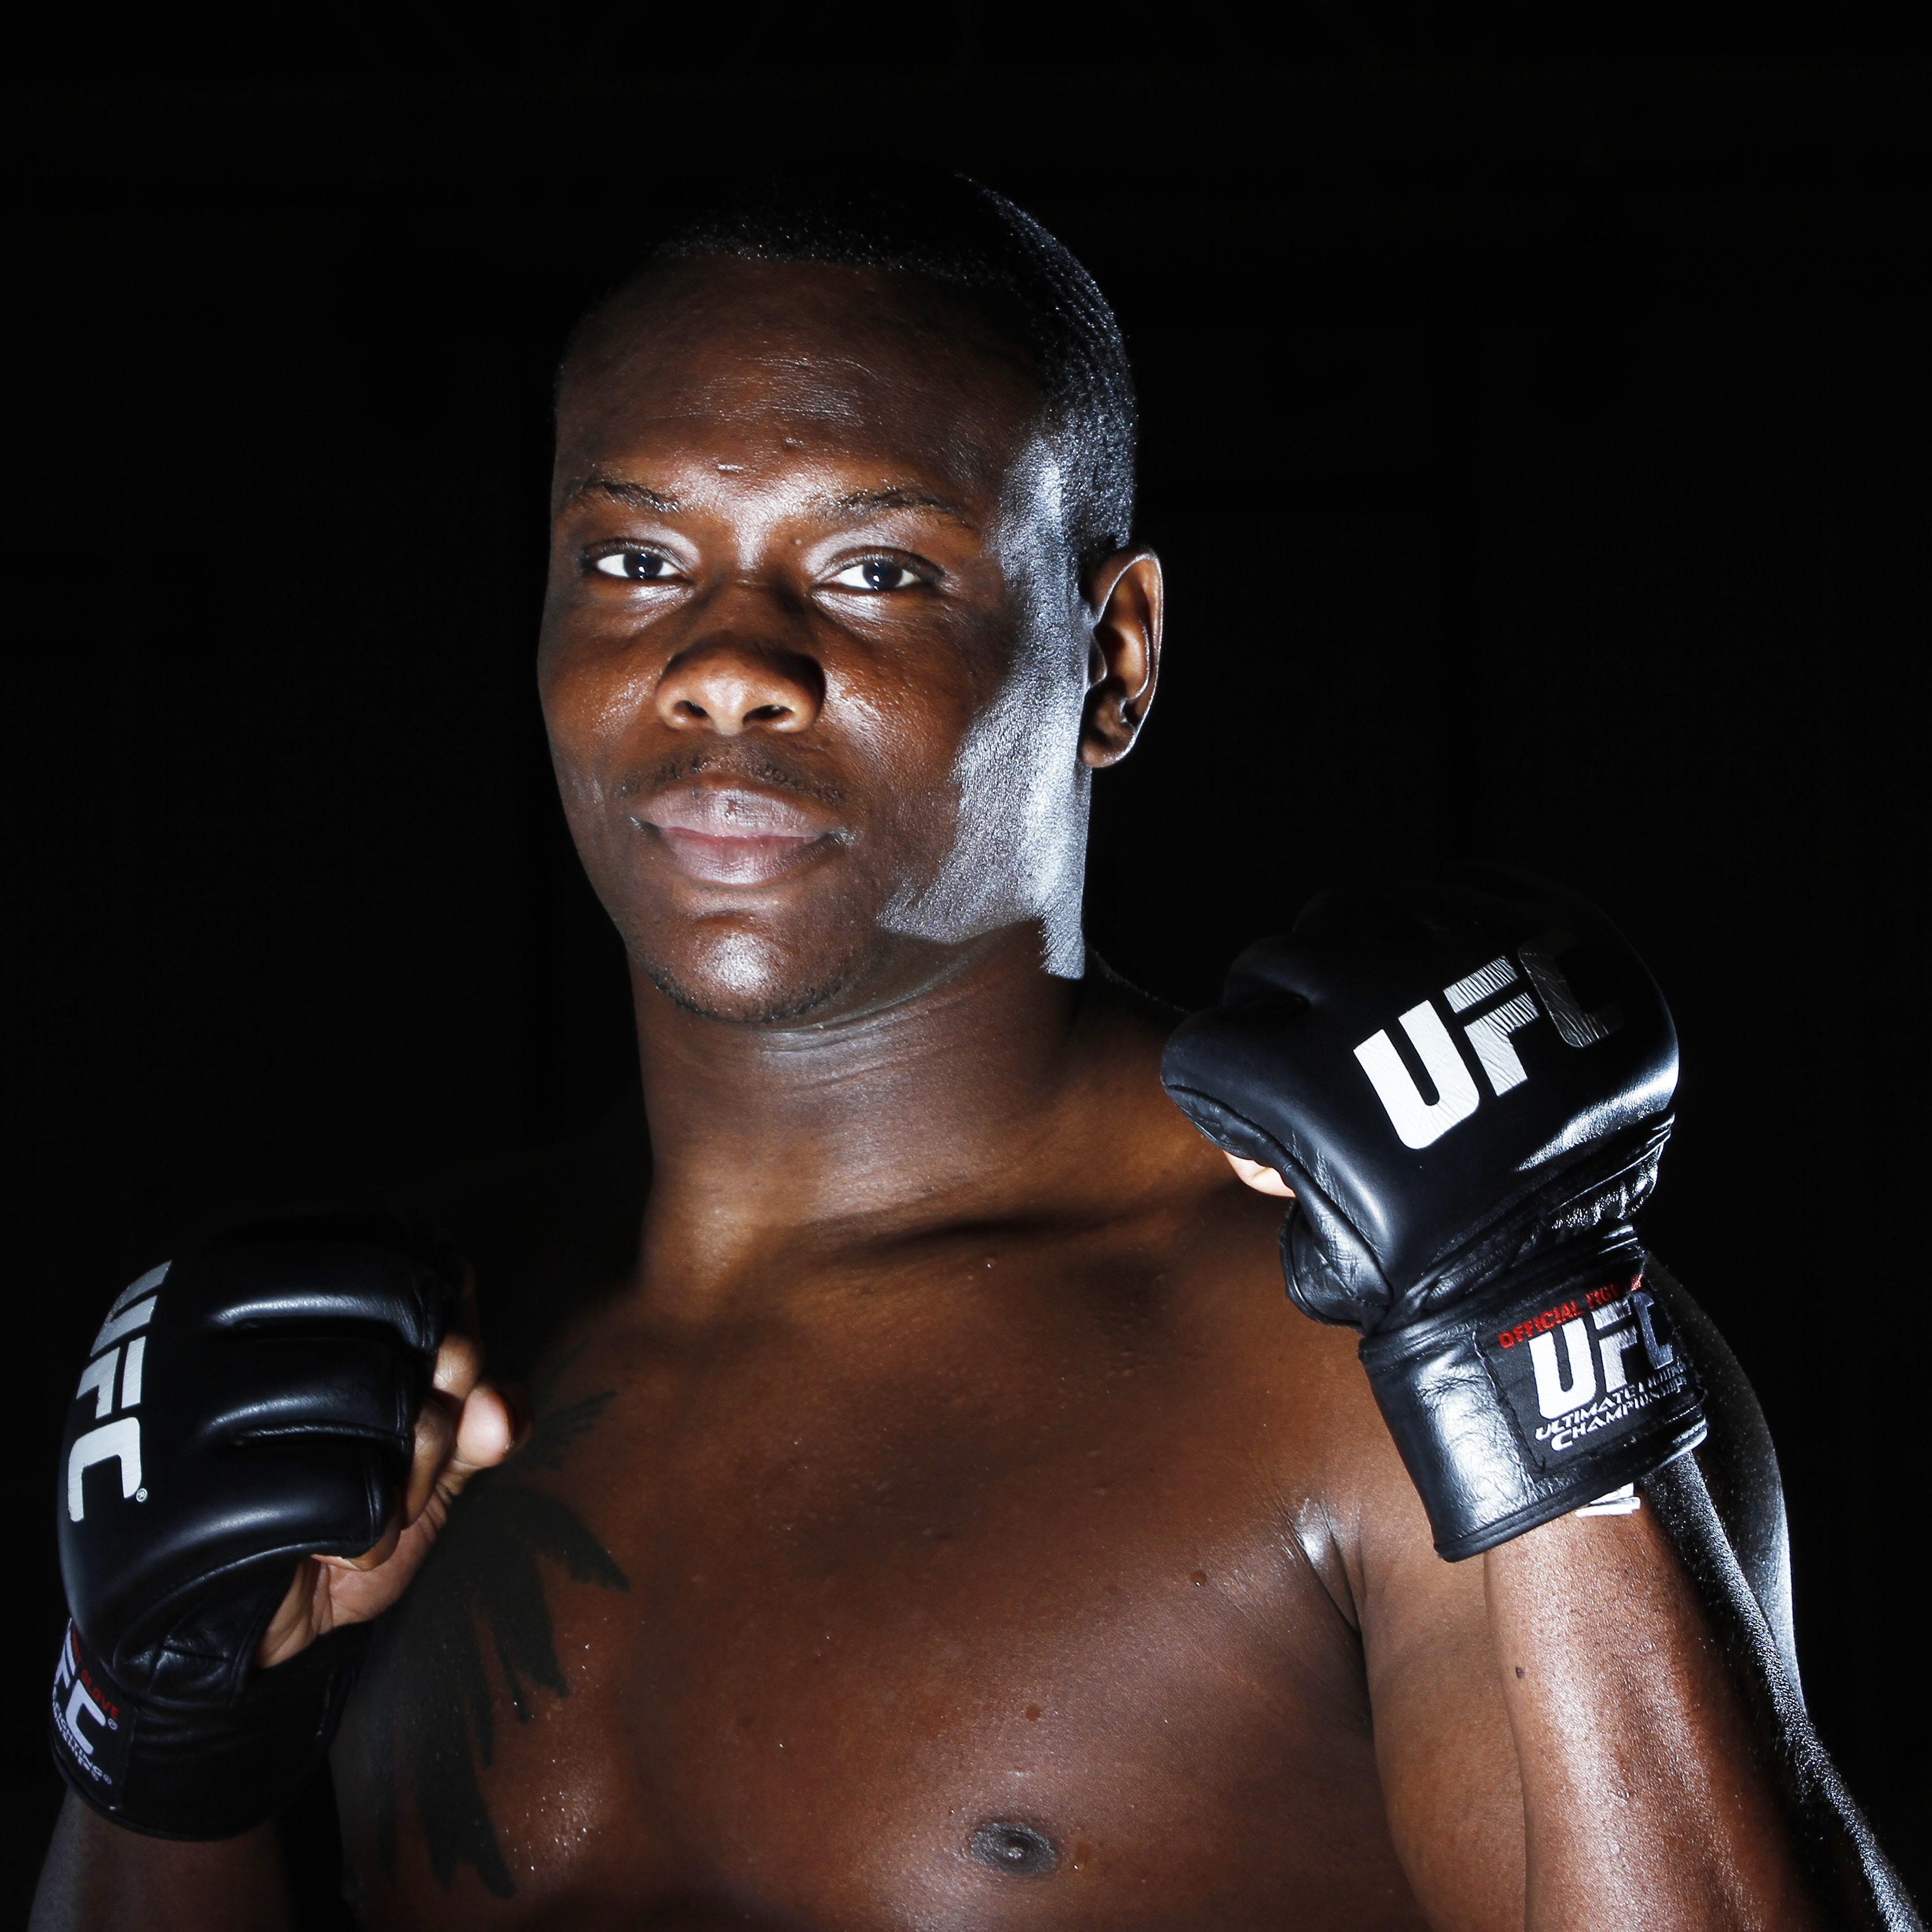 Download wallpaper 3415x3415 ovince saint preux ultimate fighting 3415x3415